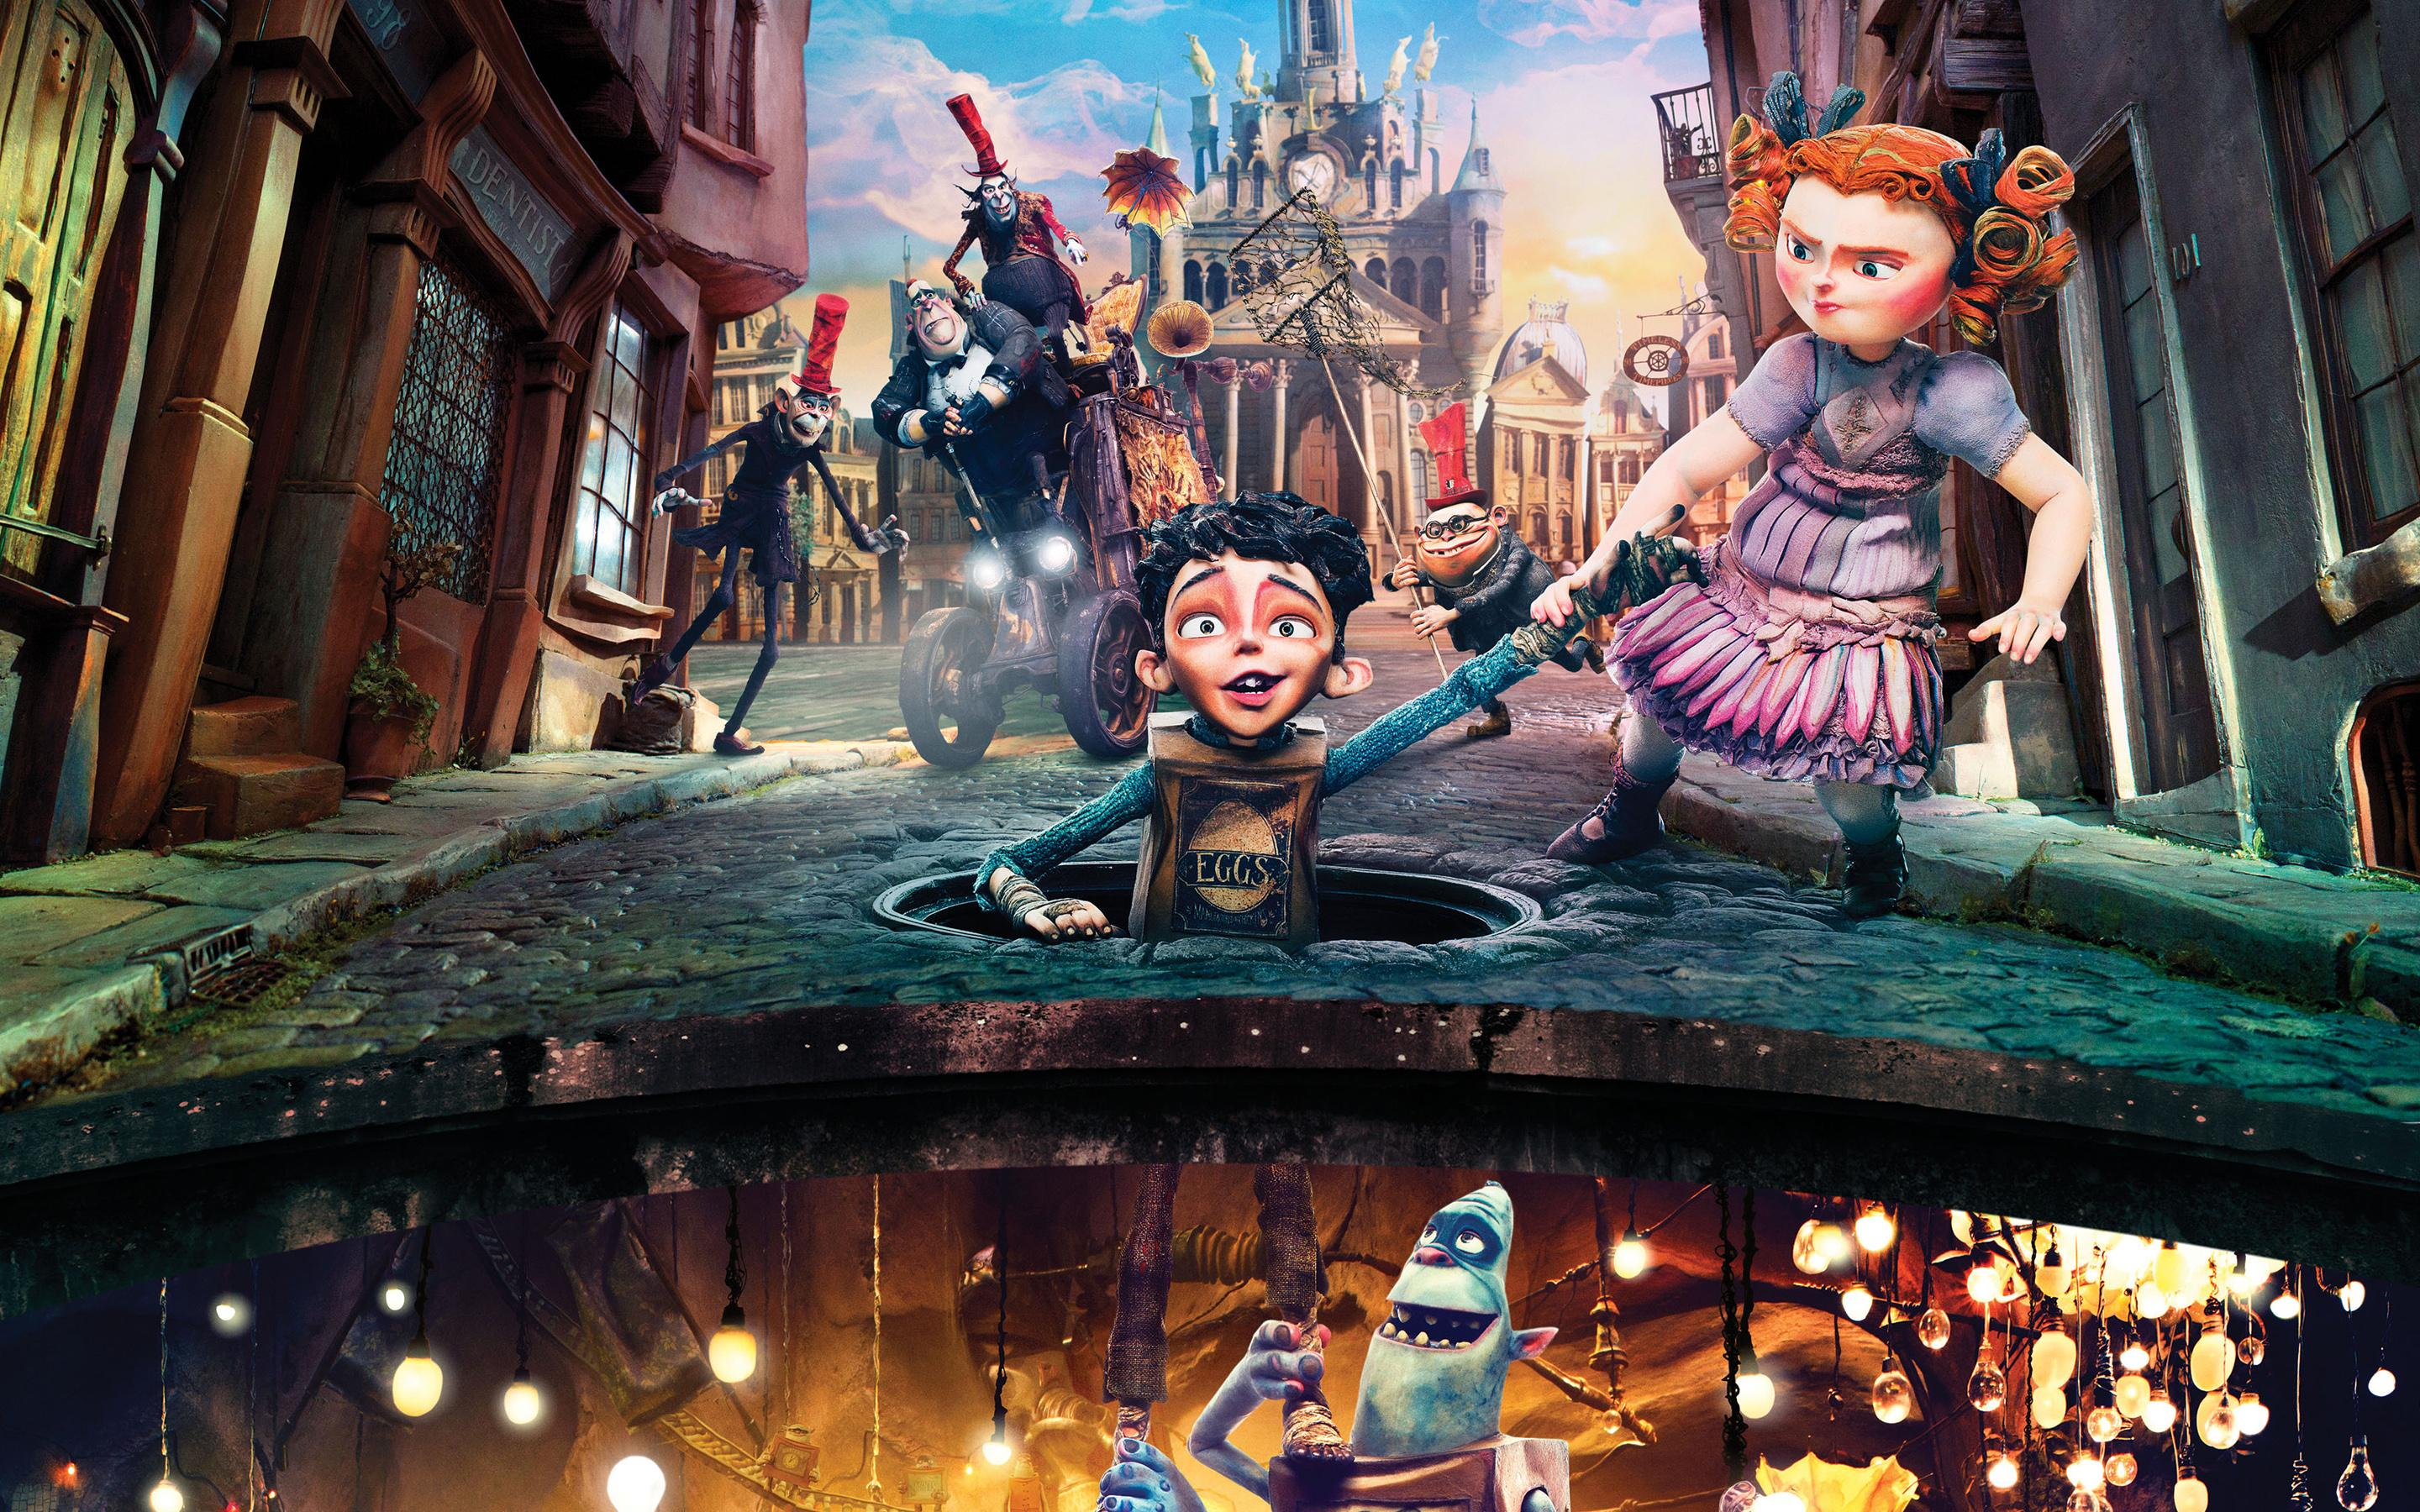 HD The Boxtrolls characters in the city Wallpaper Download 2880x1800